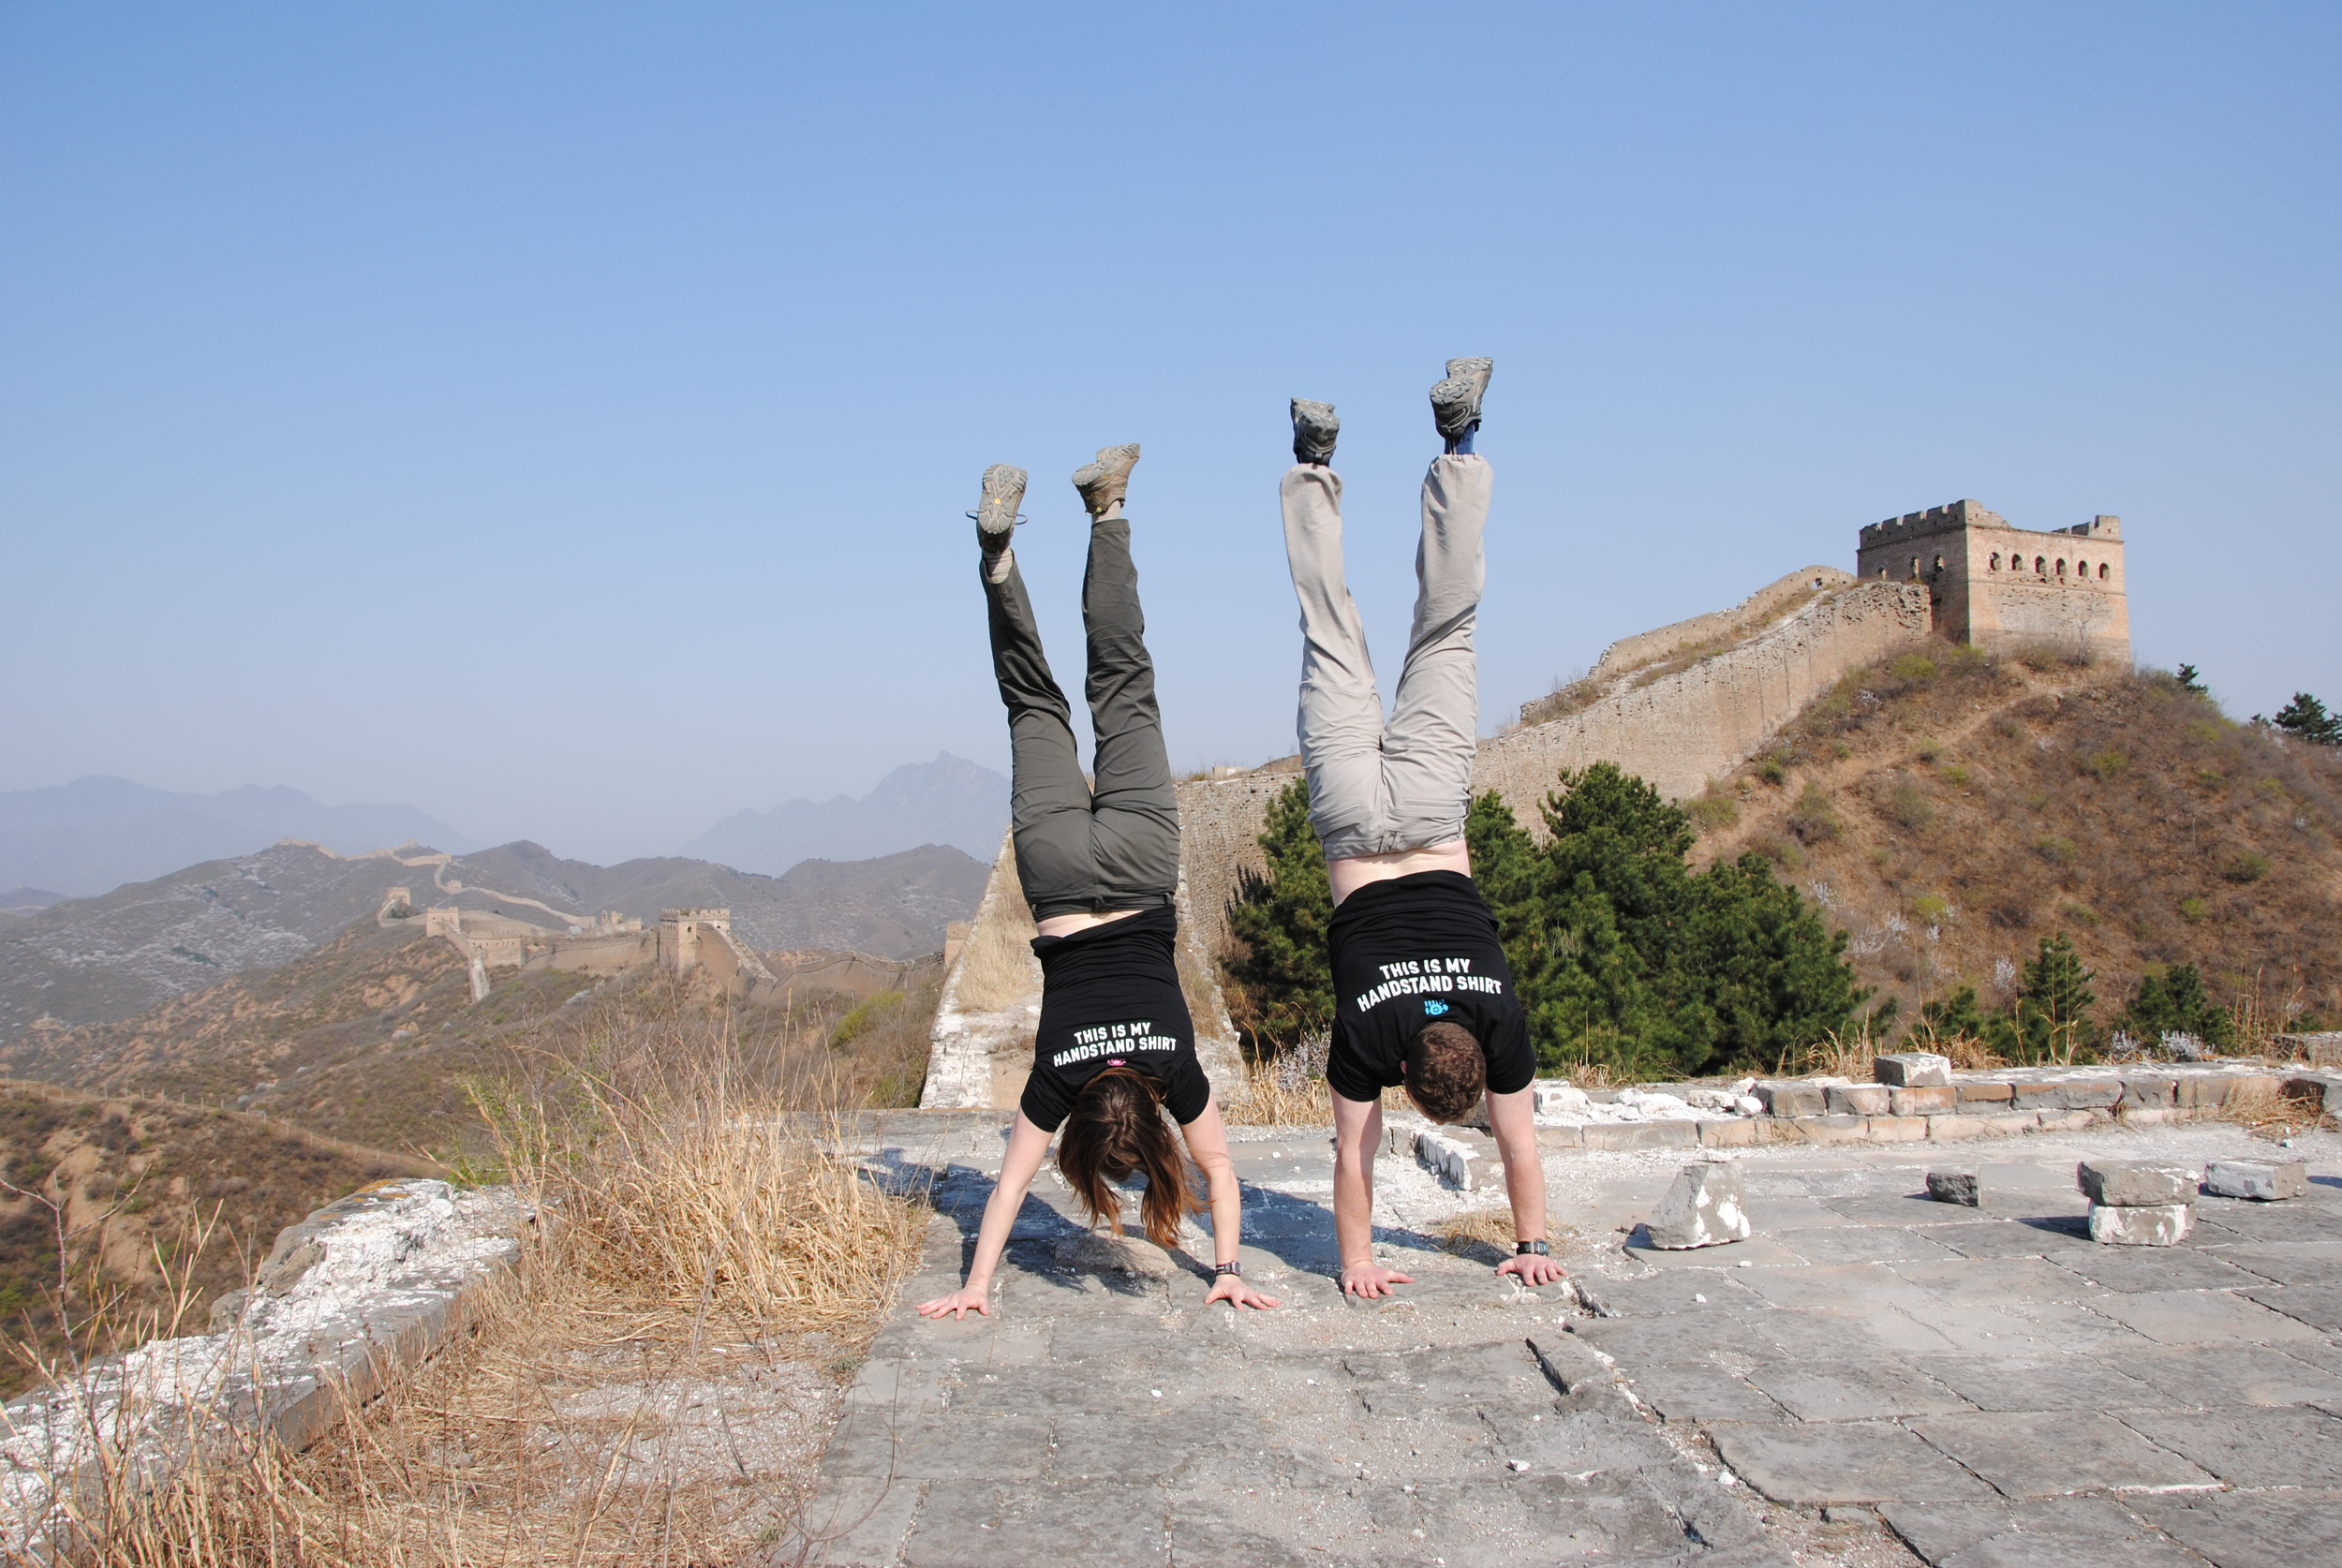 Robin M And Tyler F showing off in front of the great wall of china!!